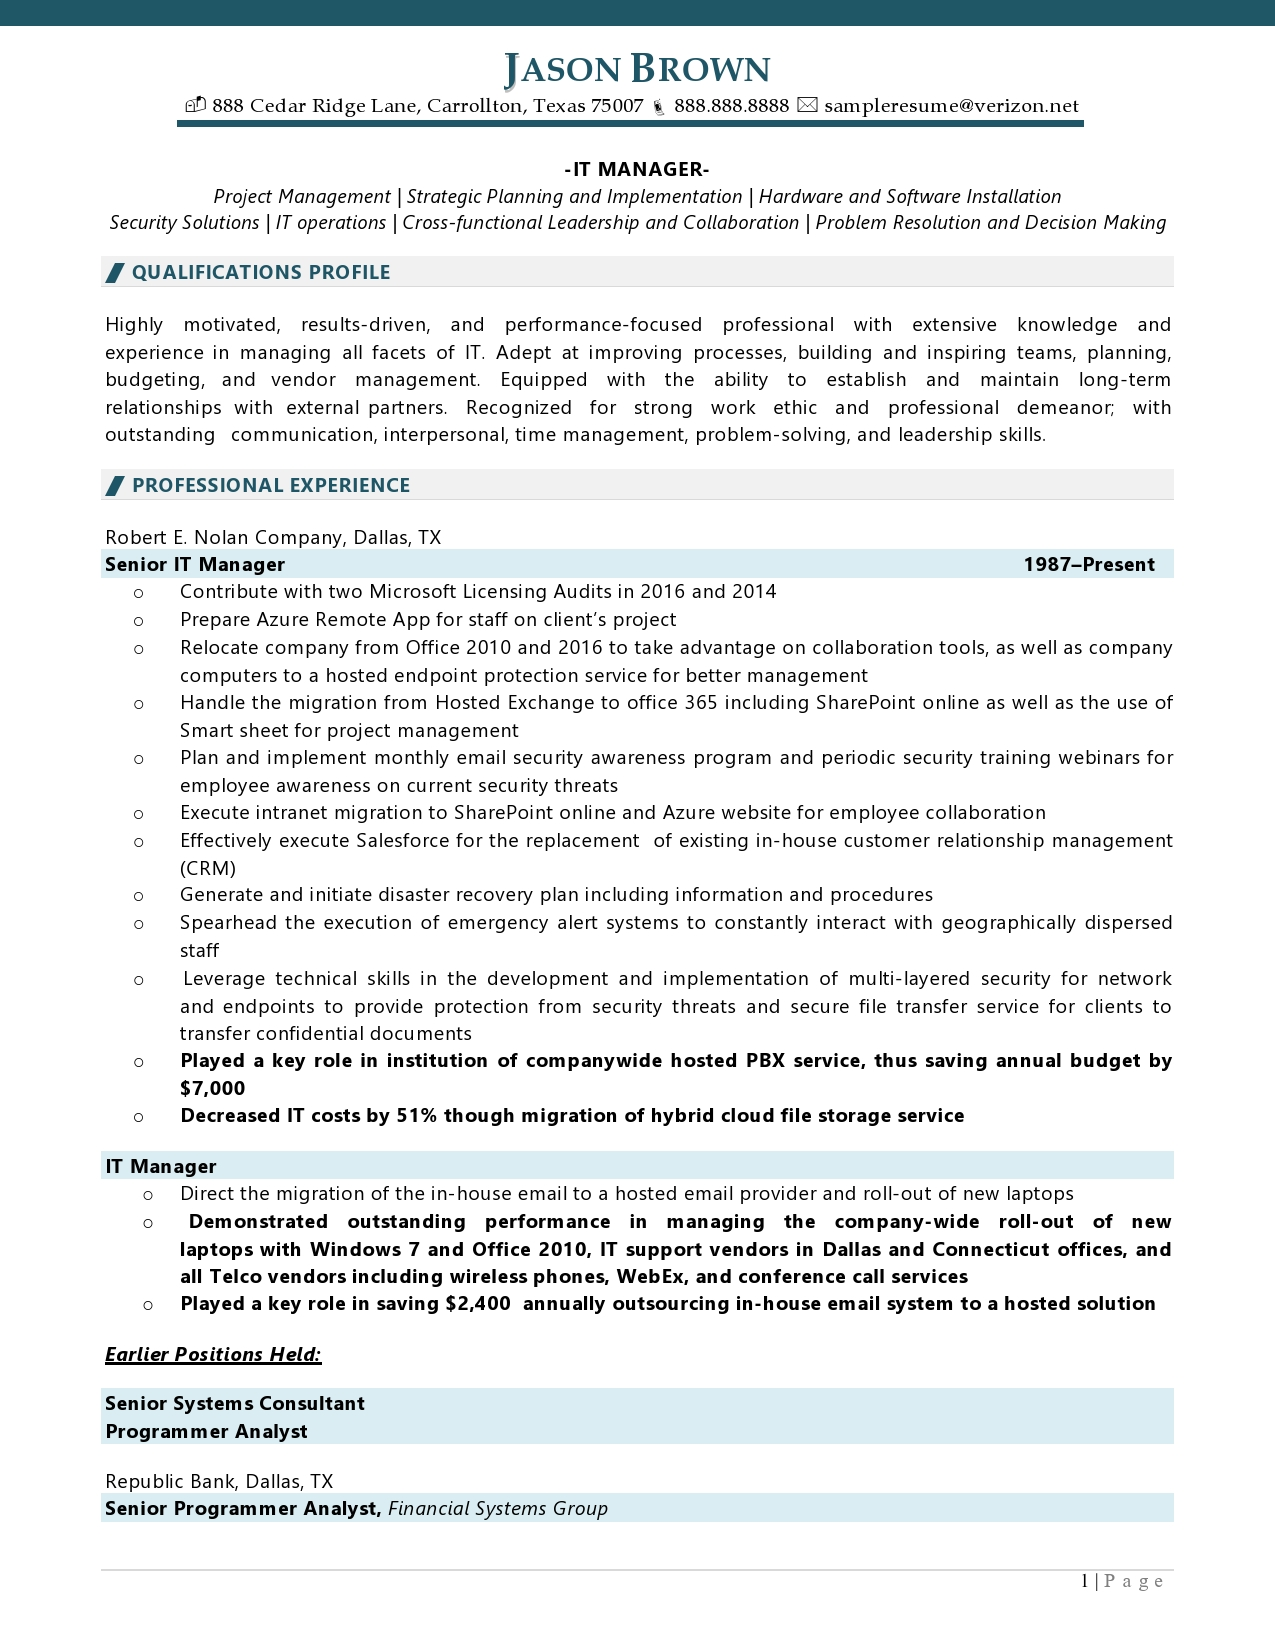 IT manager resume examples: resume sample page 1